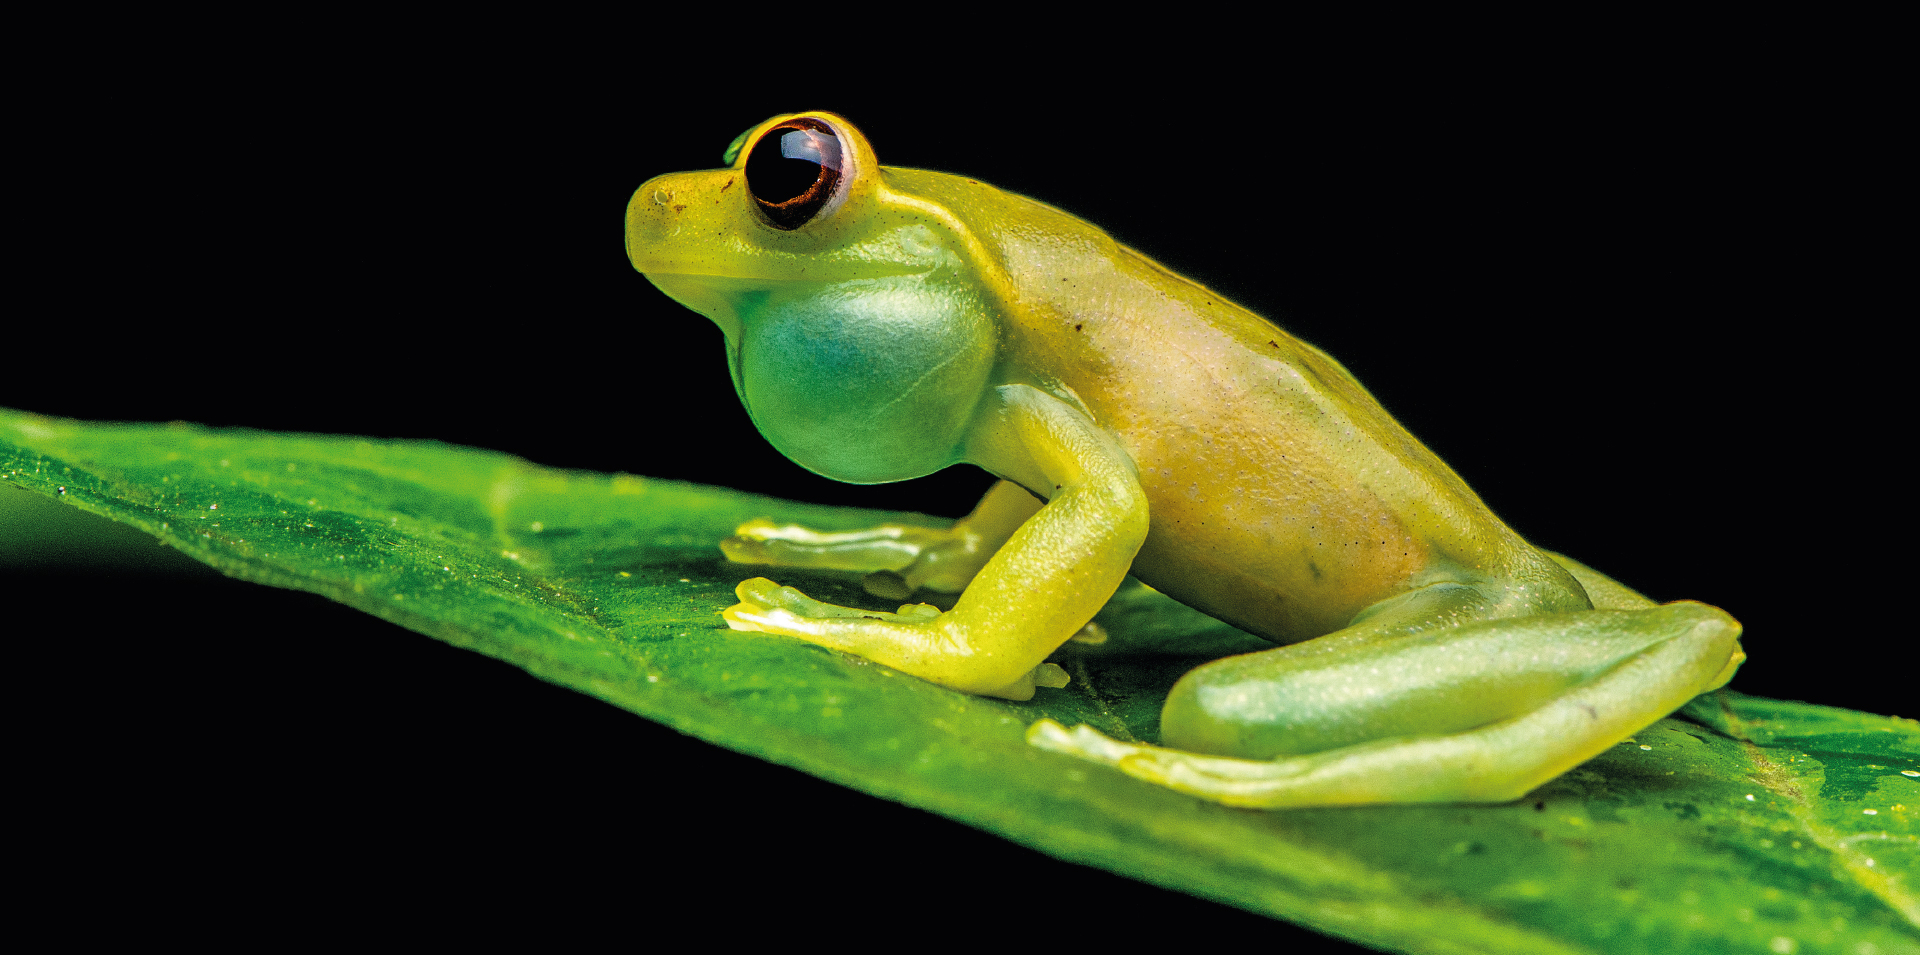 Mashpi's Glass Frog: One of Ecuador's endemic species